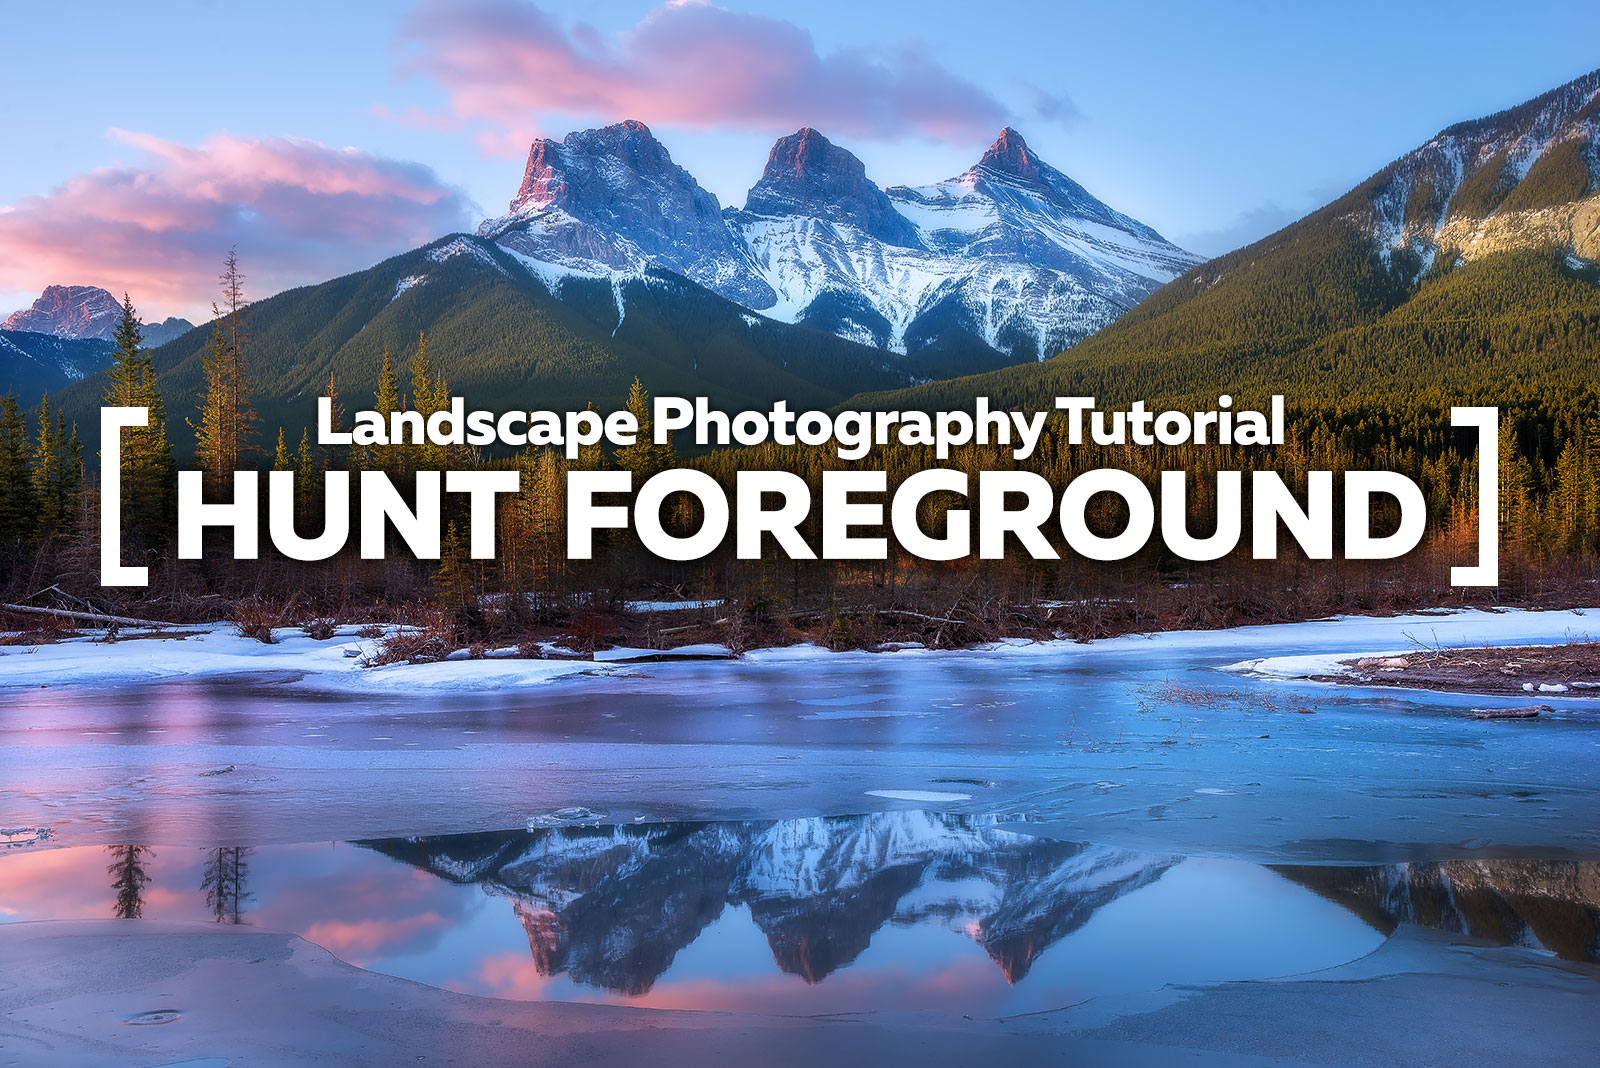 Landscape Photography Tutorial - Hunt Foreground